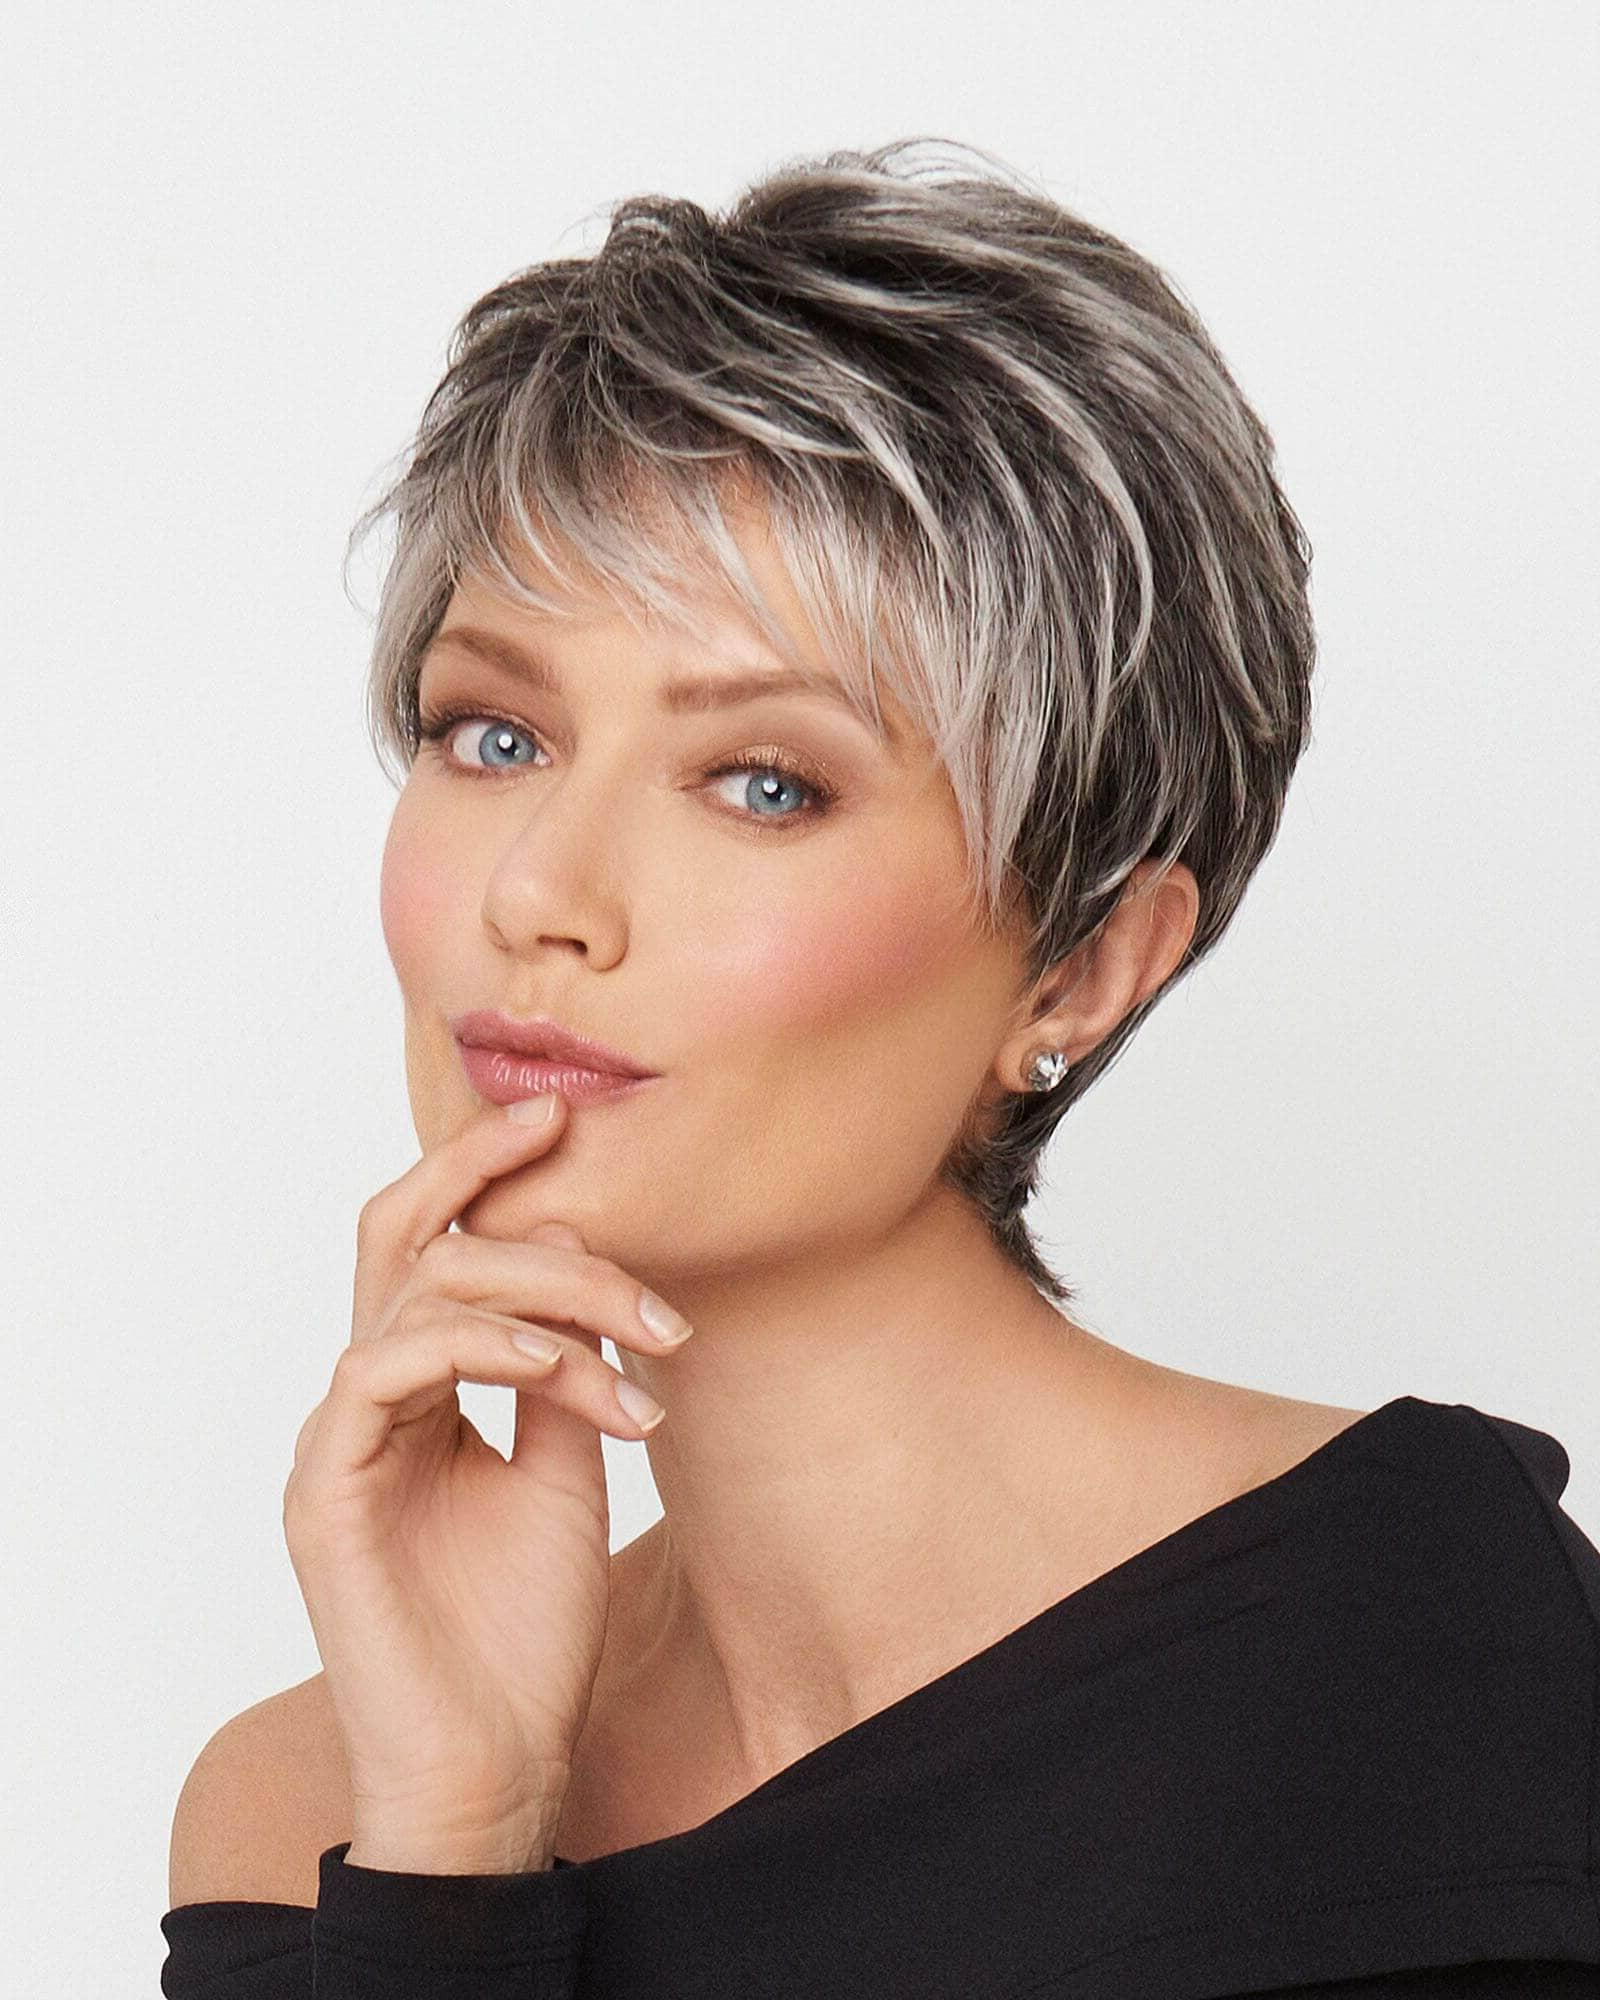 50 Pixie Haircuts You'll See Trending In 2018 With Regard To Textured Undercut Pixie Hairstyles (View 7 of 20)